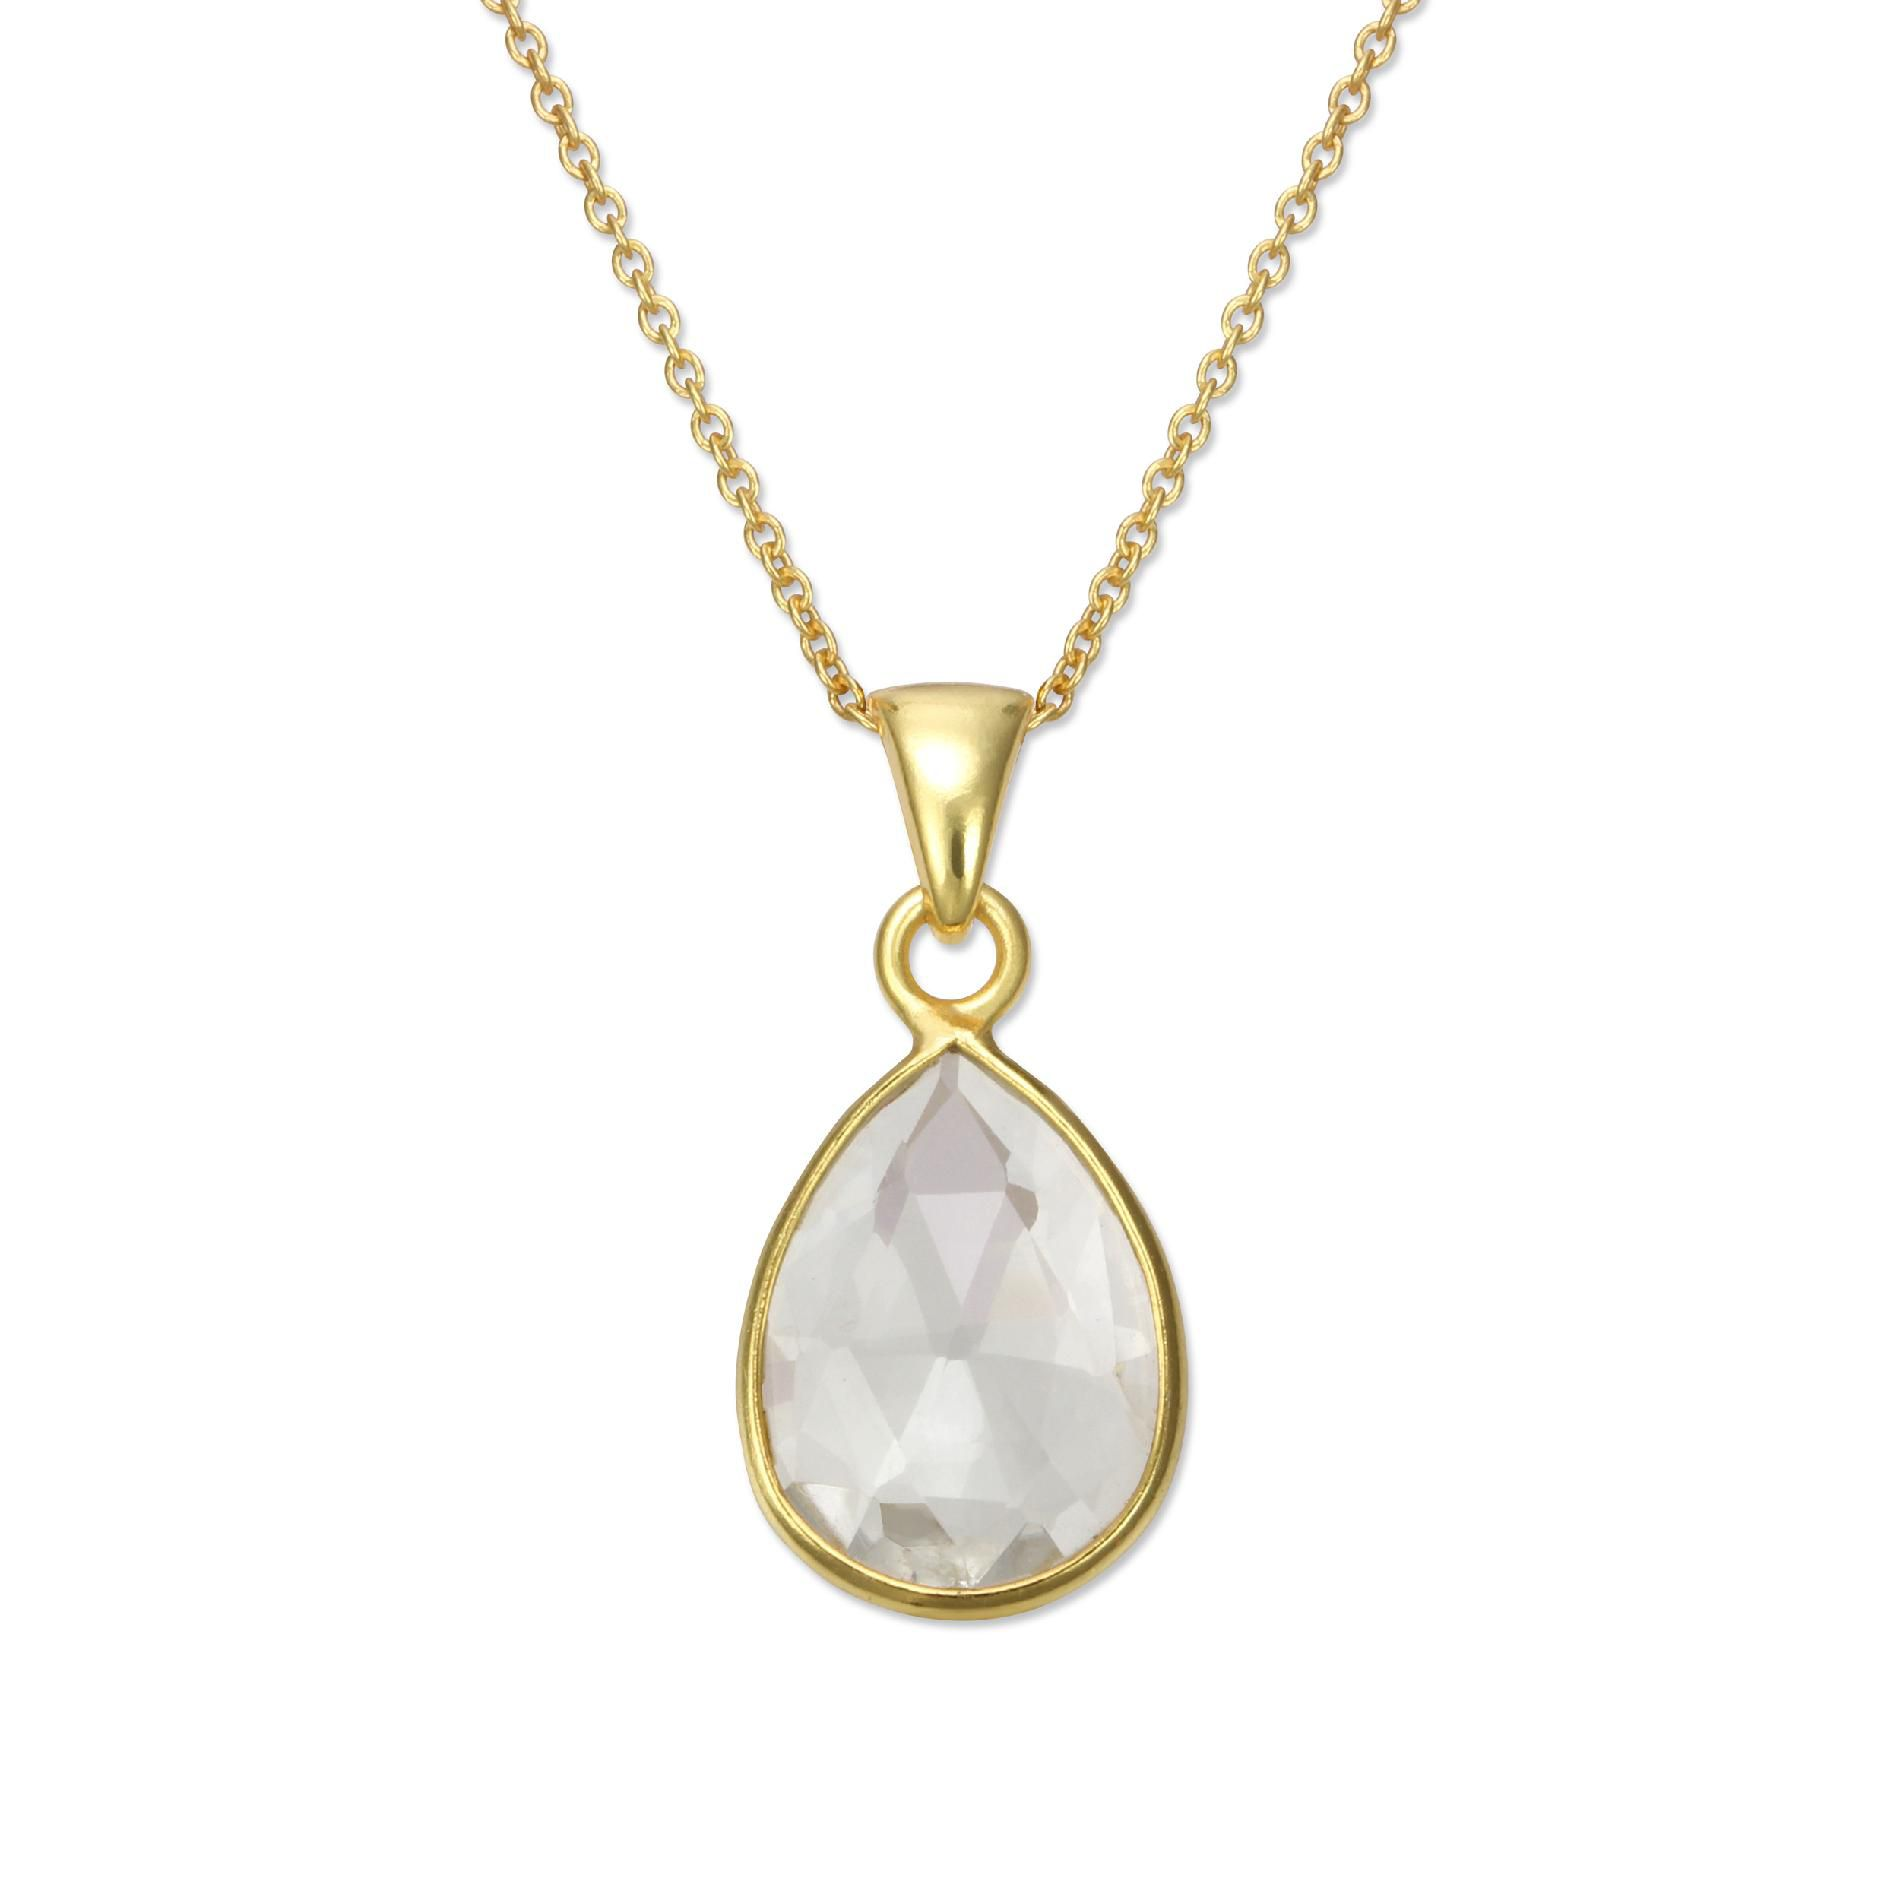 18kt Gold over Sterling Silver Cushion Pendant Clear Quartz Necklace